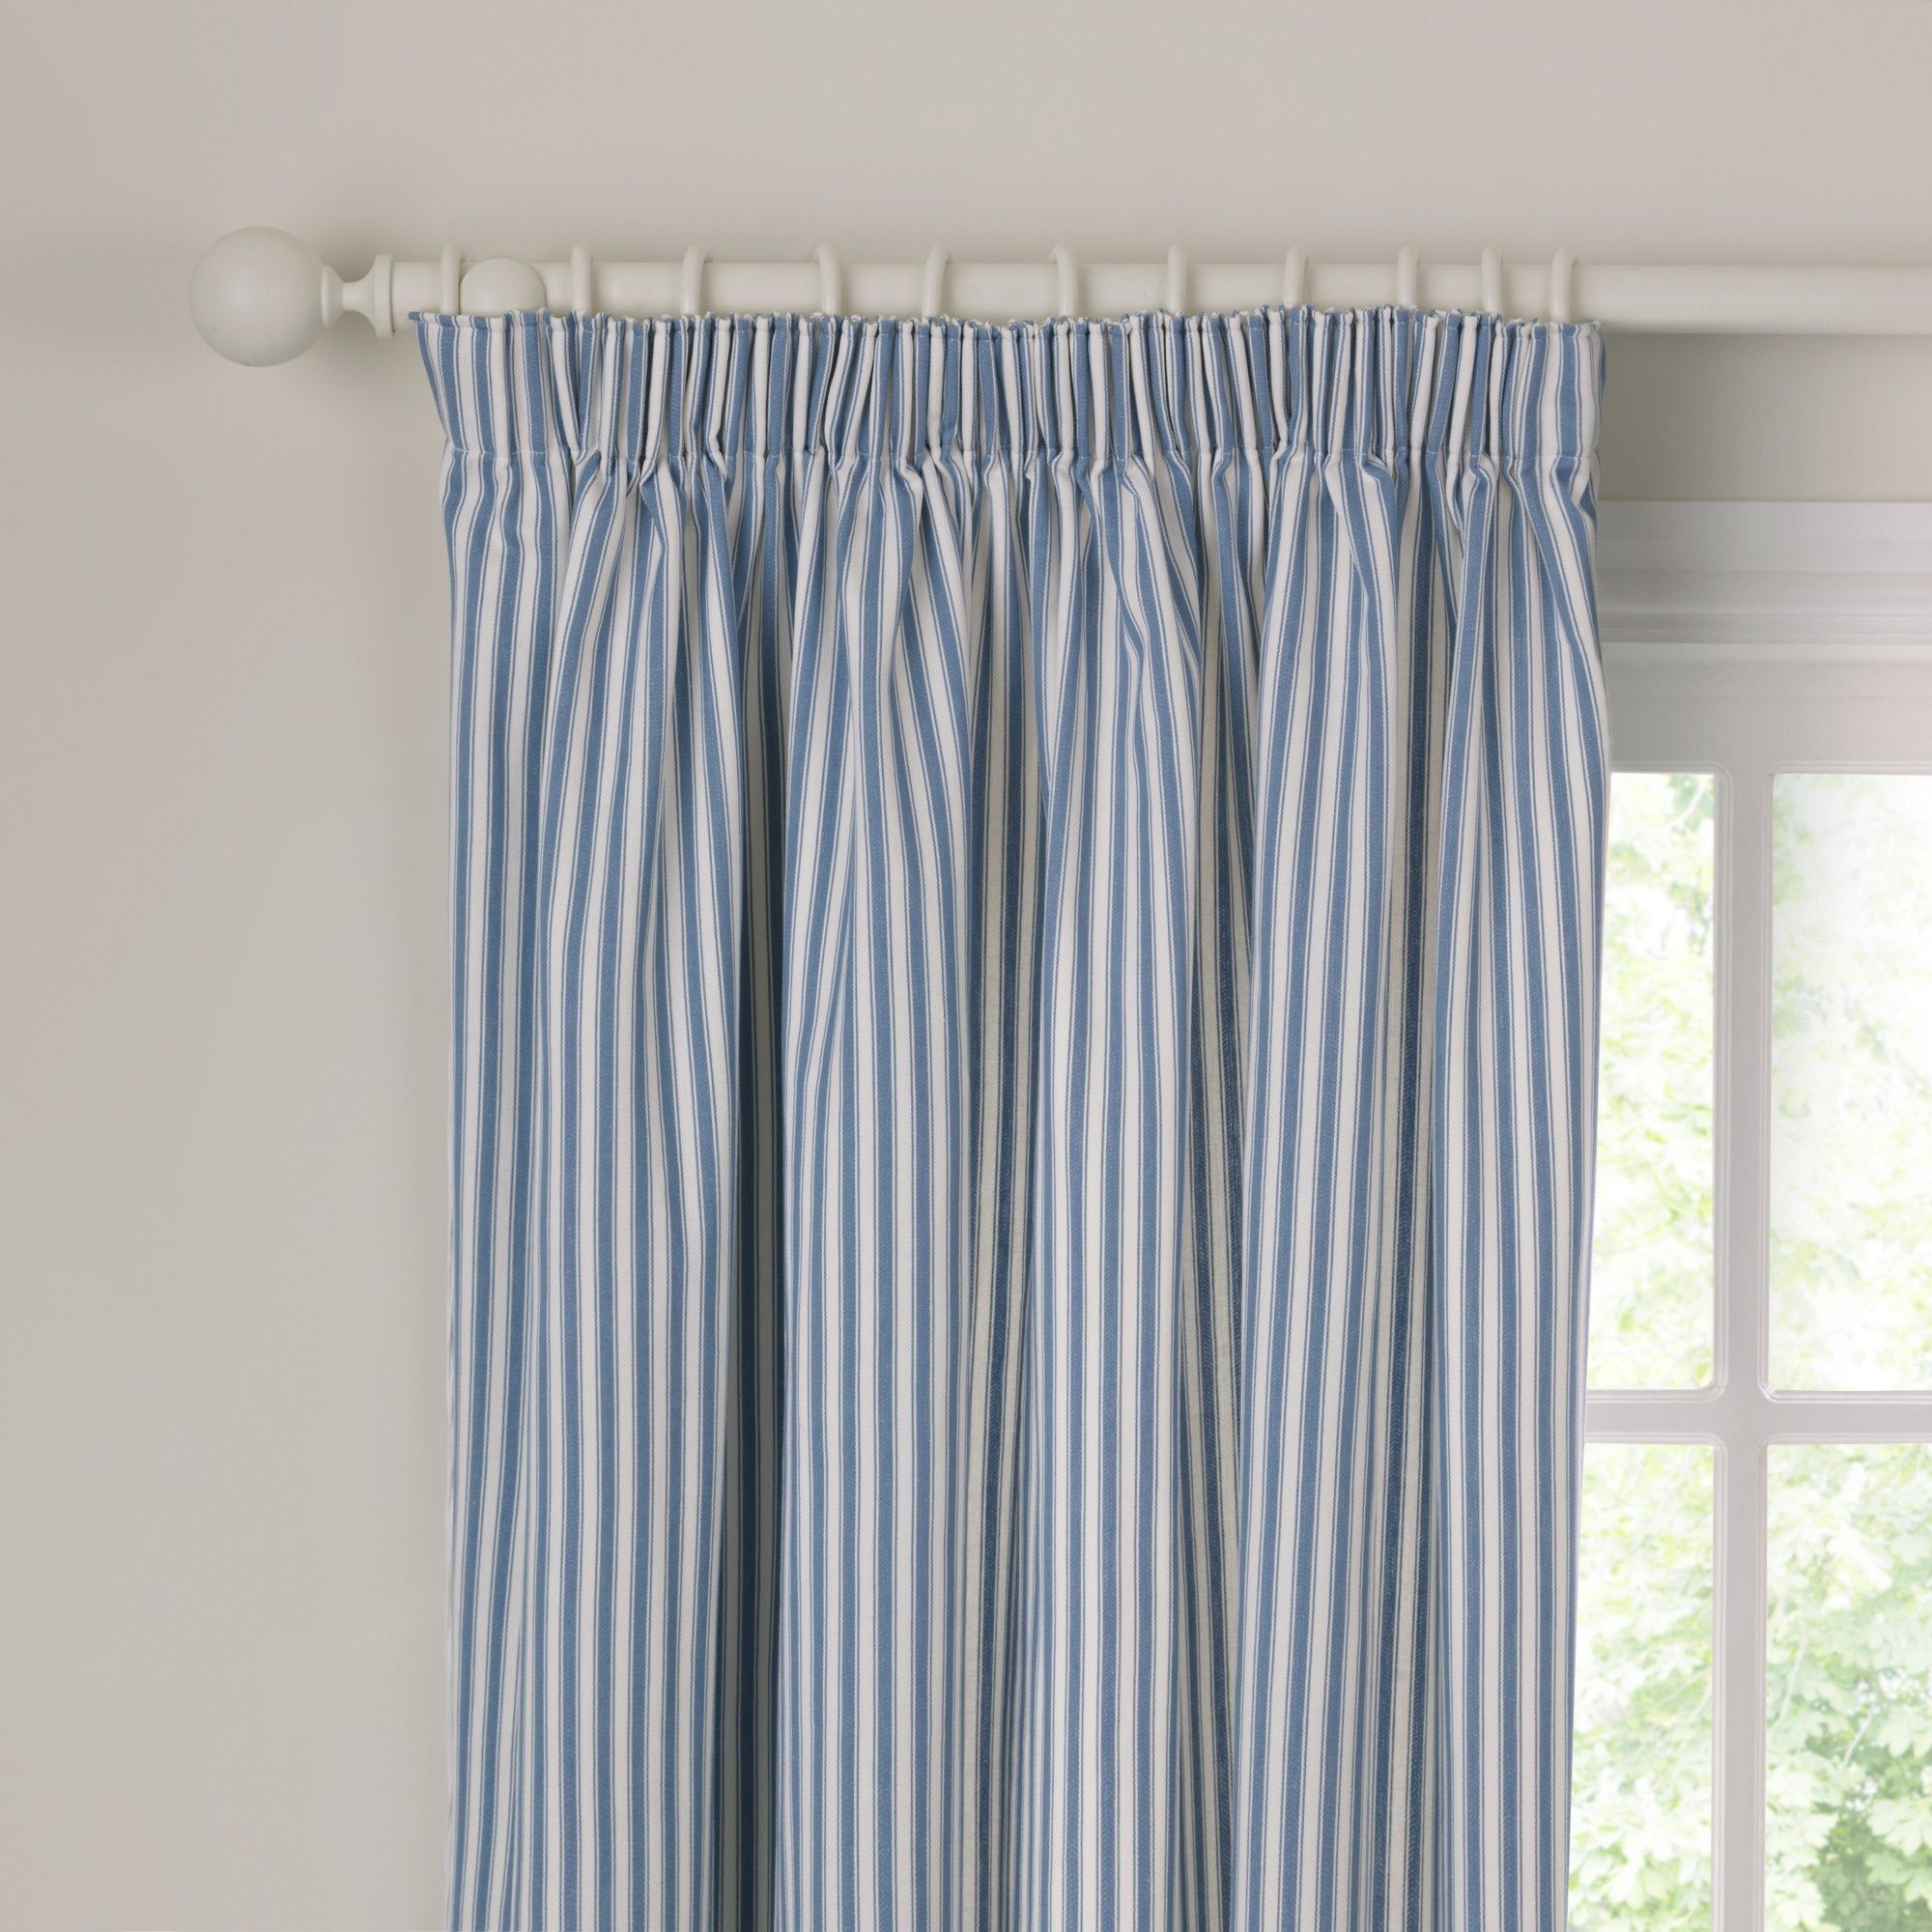 Curtains Uk John Lewis Homeminimalis Ticking Stripe Curtains Pencil Pleat Curtains